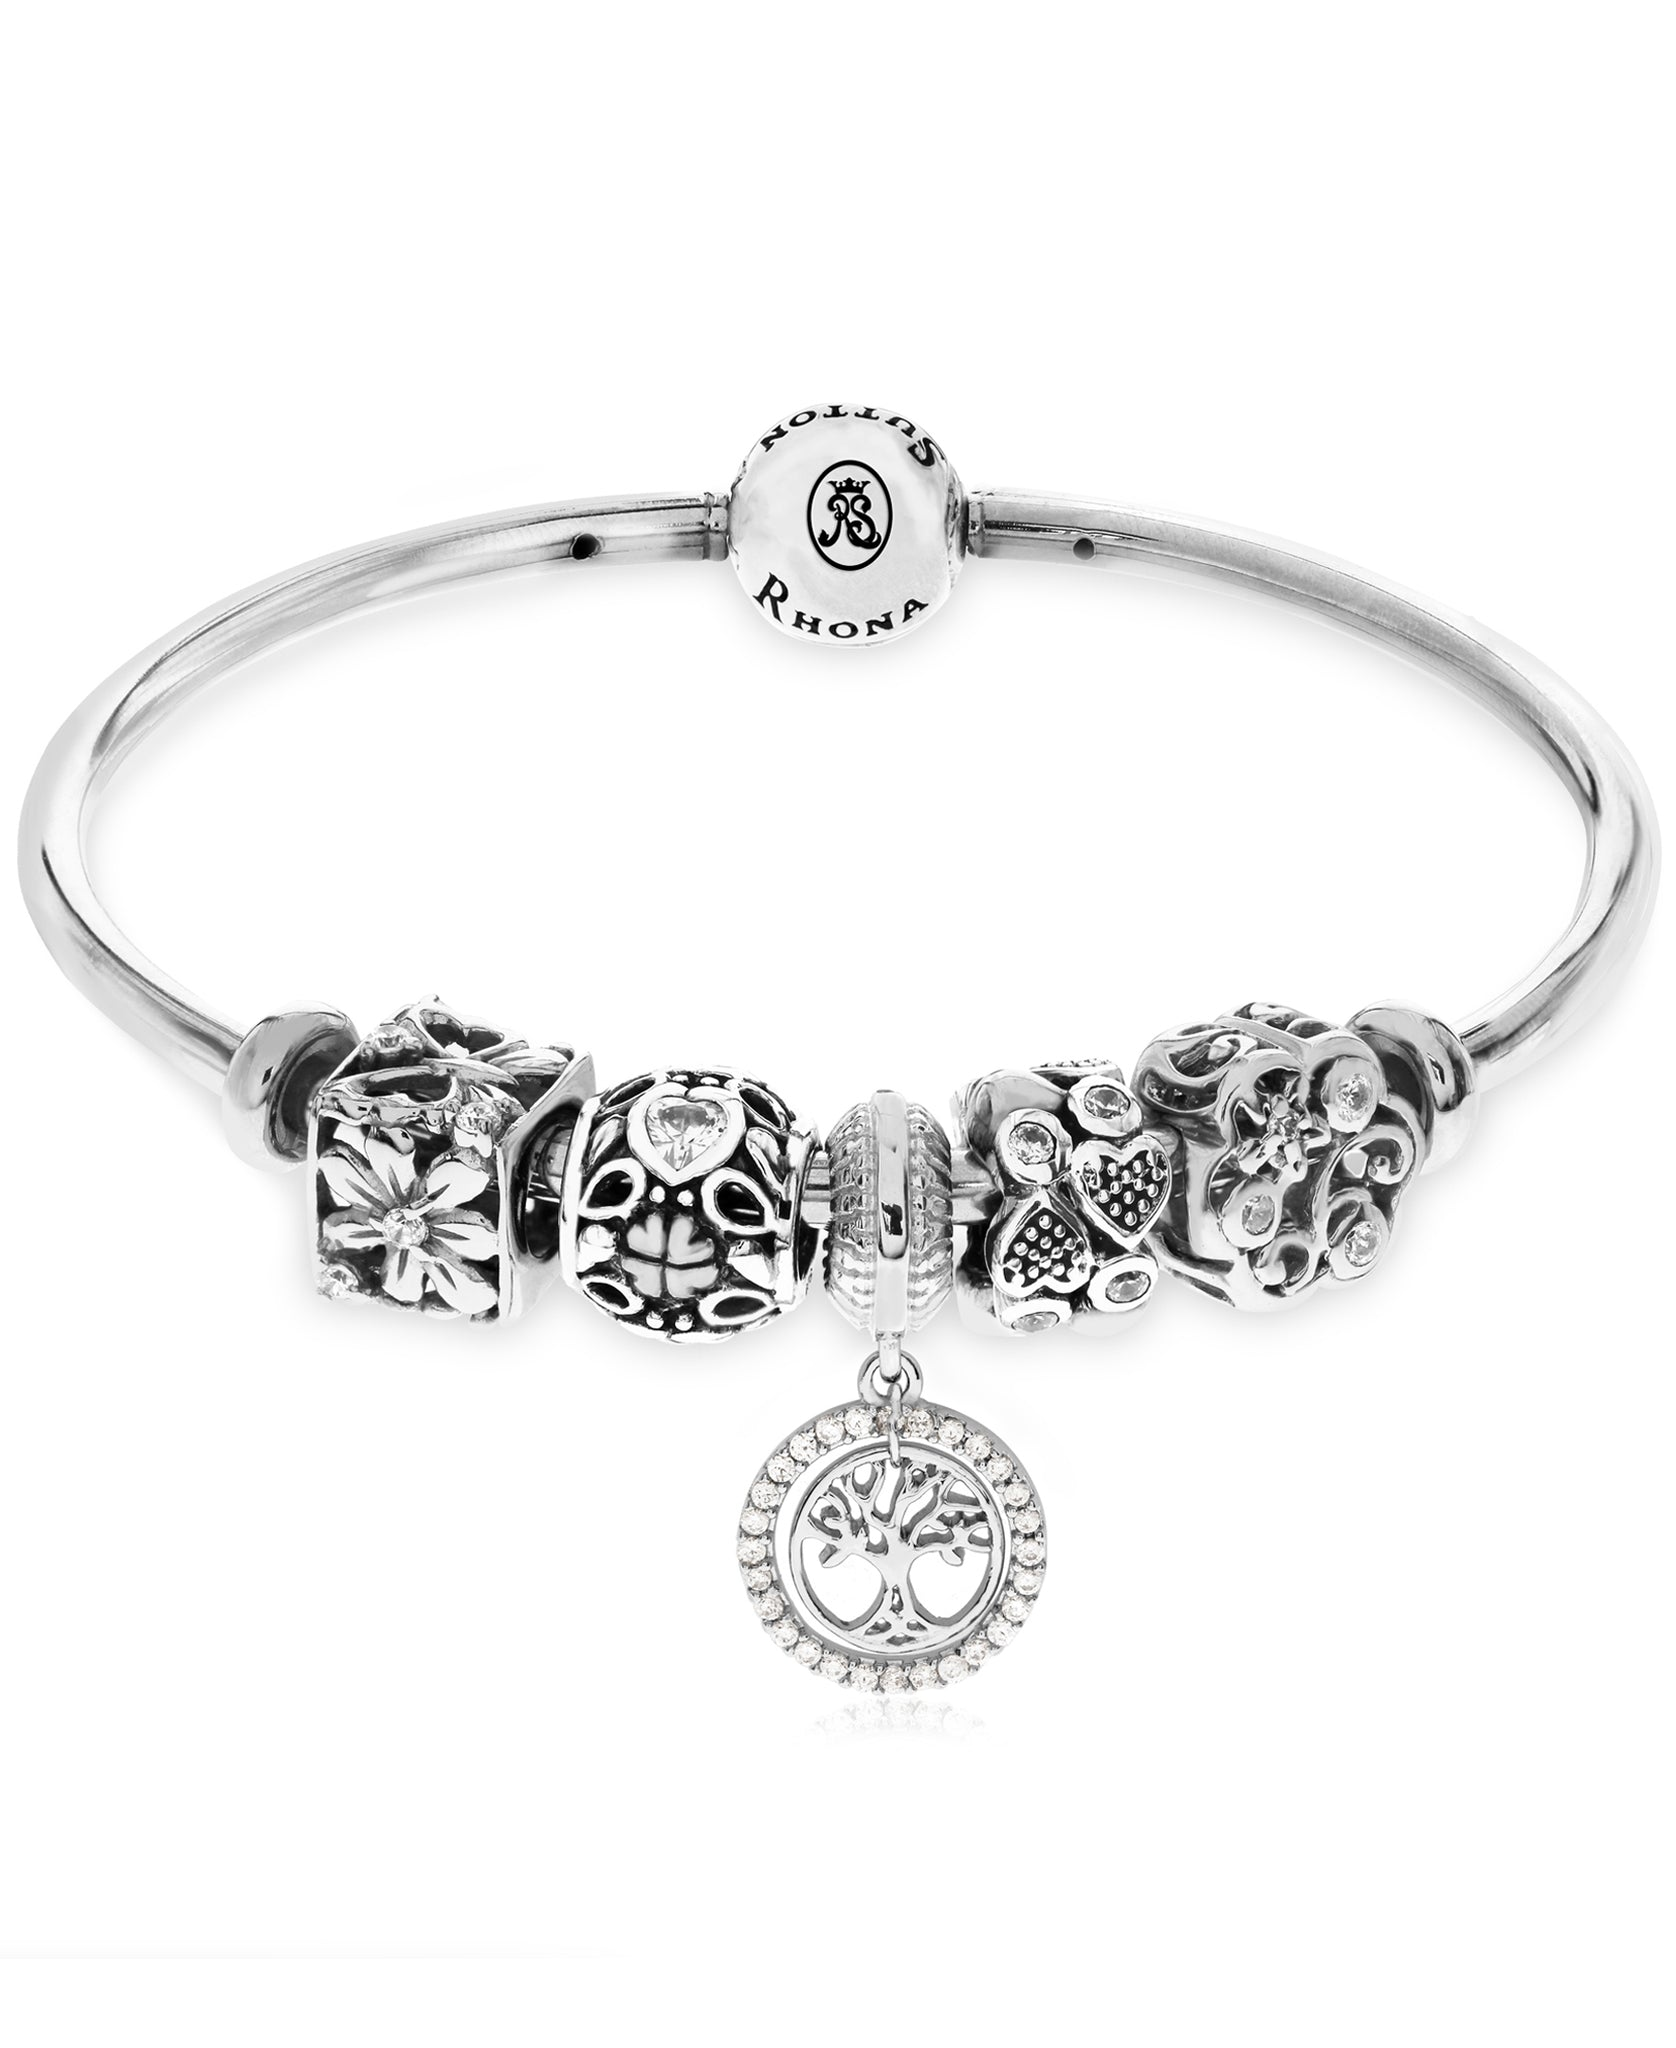 Cubic Zirconia Family Tree Charm Bangle Bracelet Gift Set in Sterling Silver (3 colors) - Rhona Sutton Jewellery